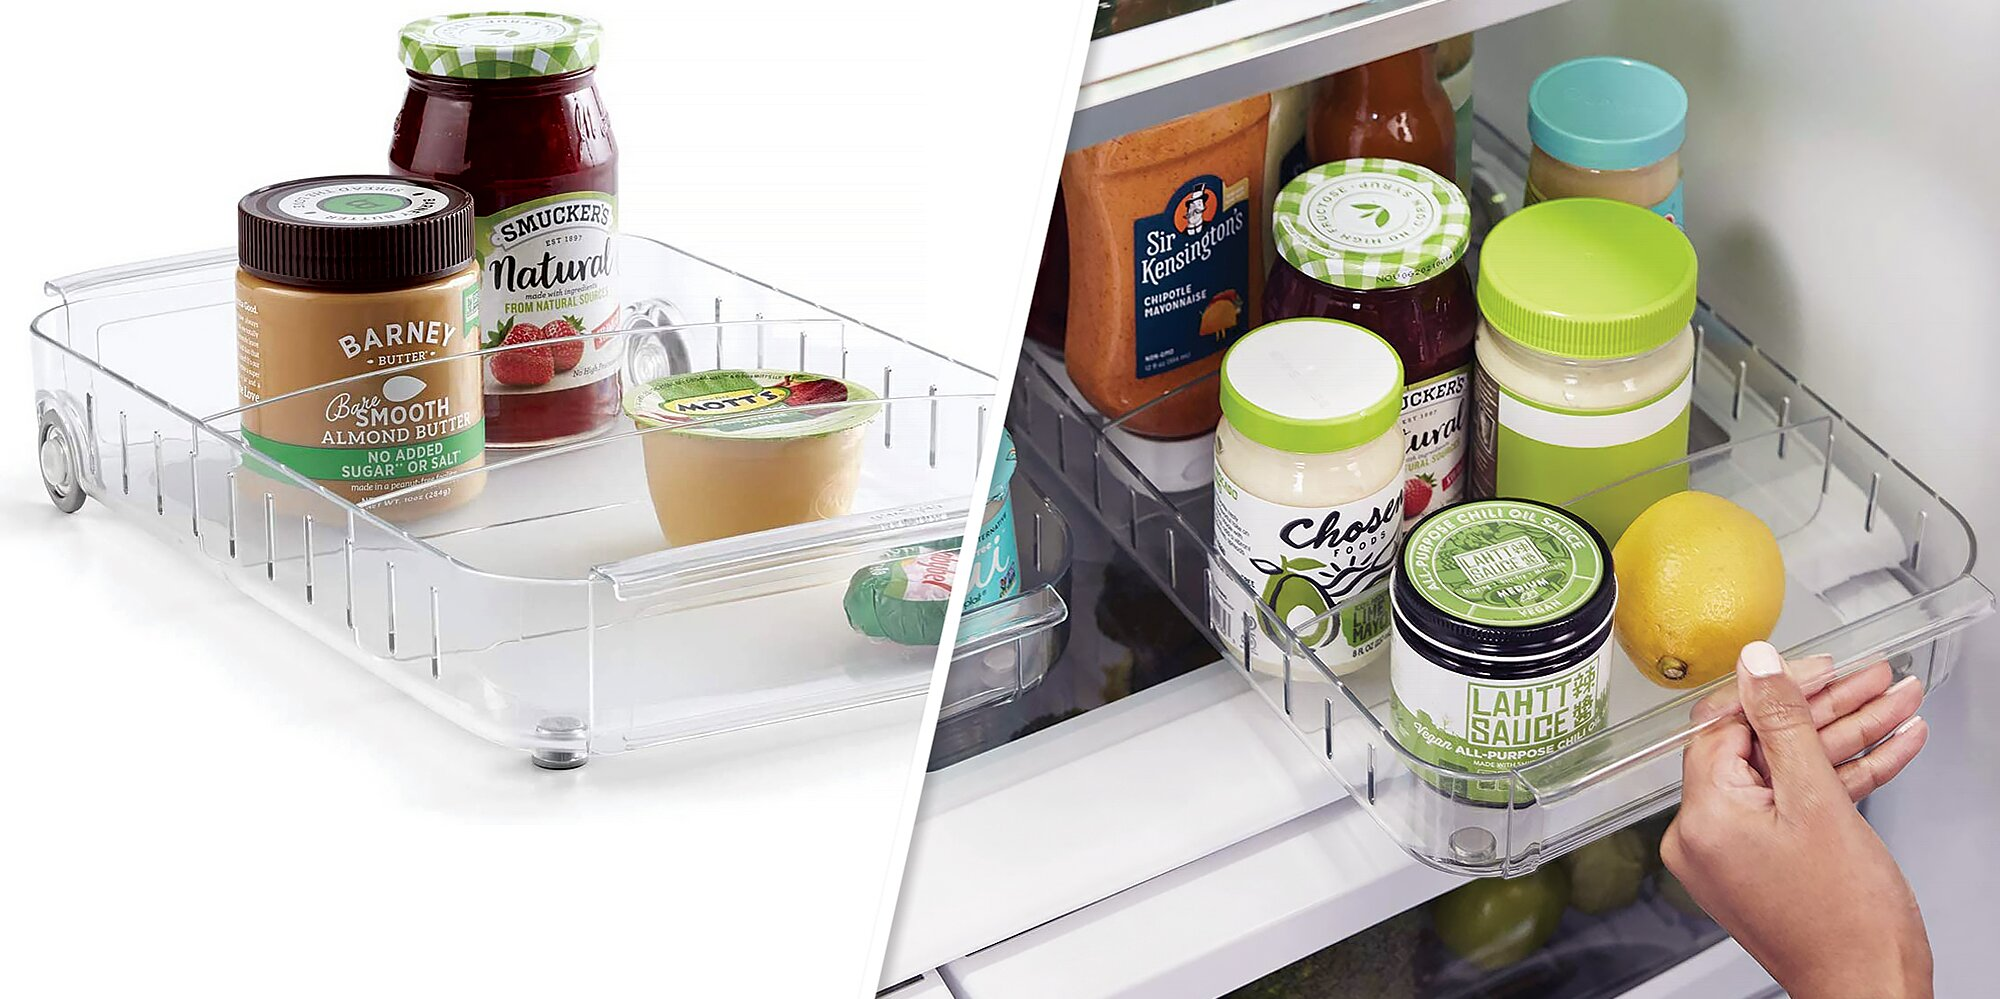 This Could Be the Smartest Way to Organize the Refrigerator That We've Seen Yet